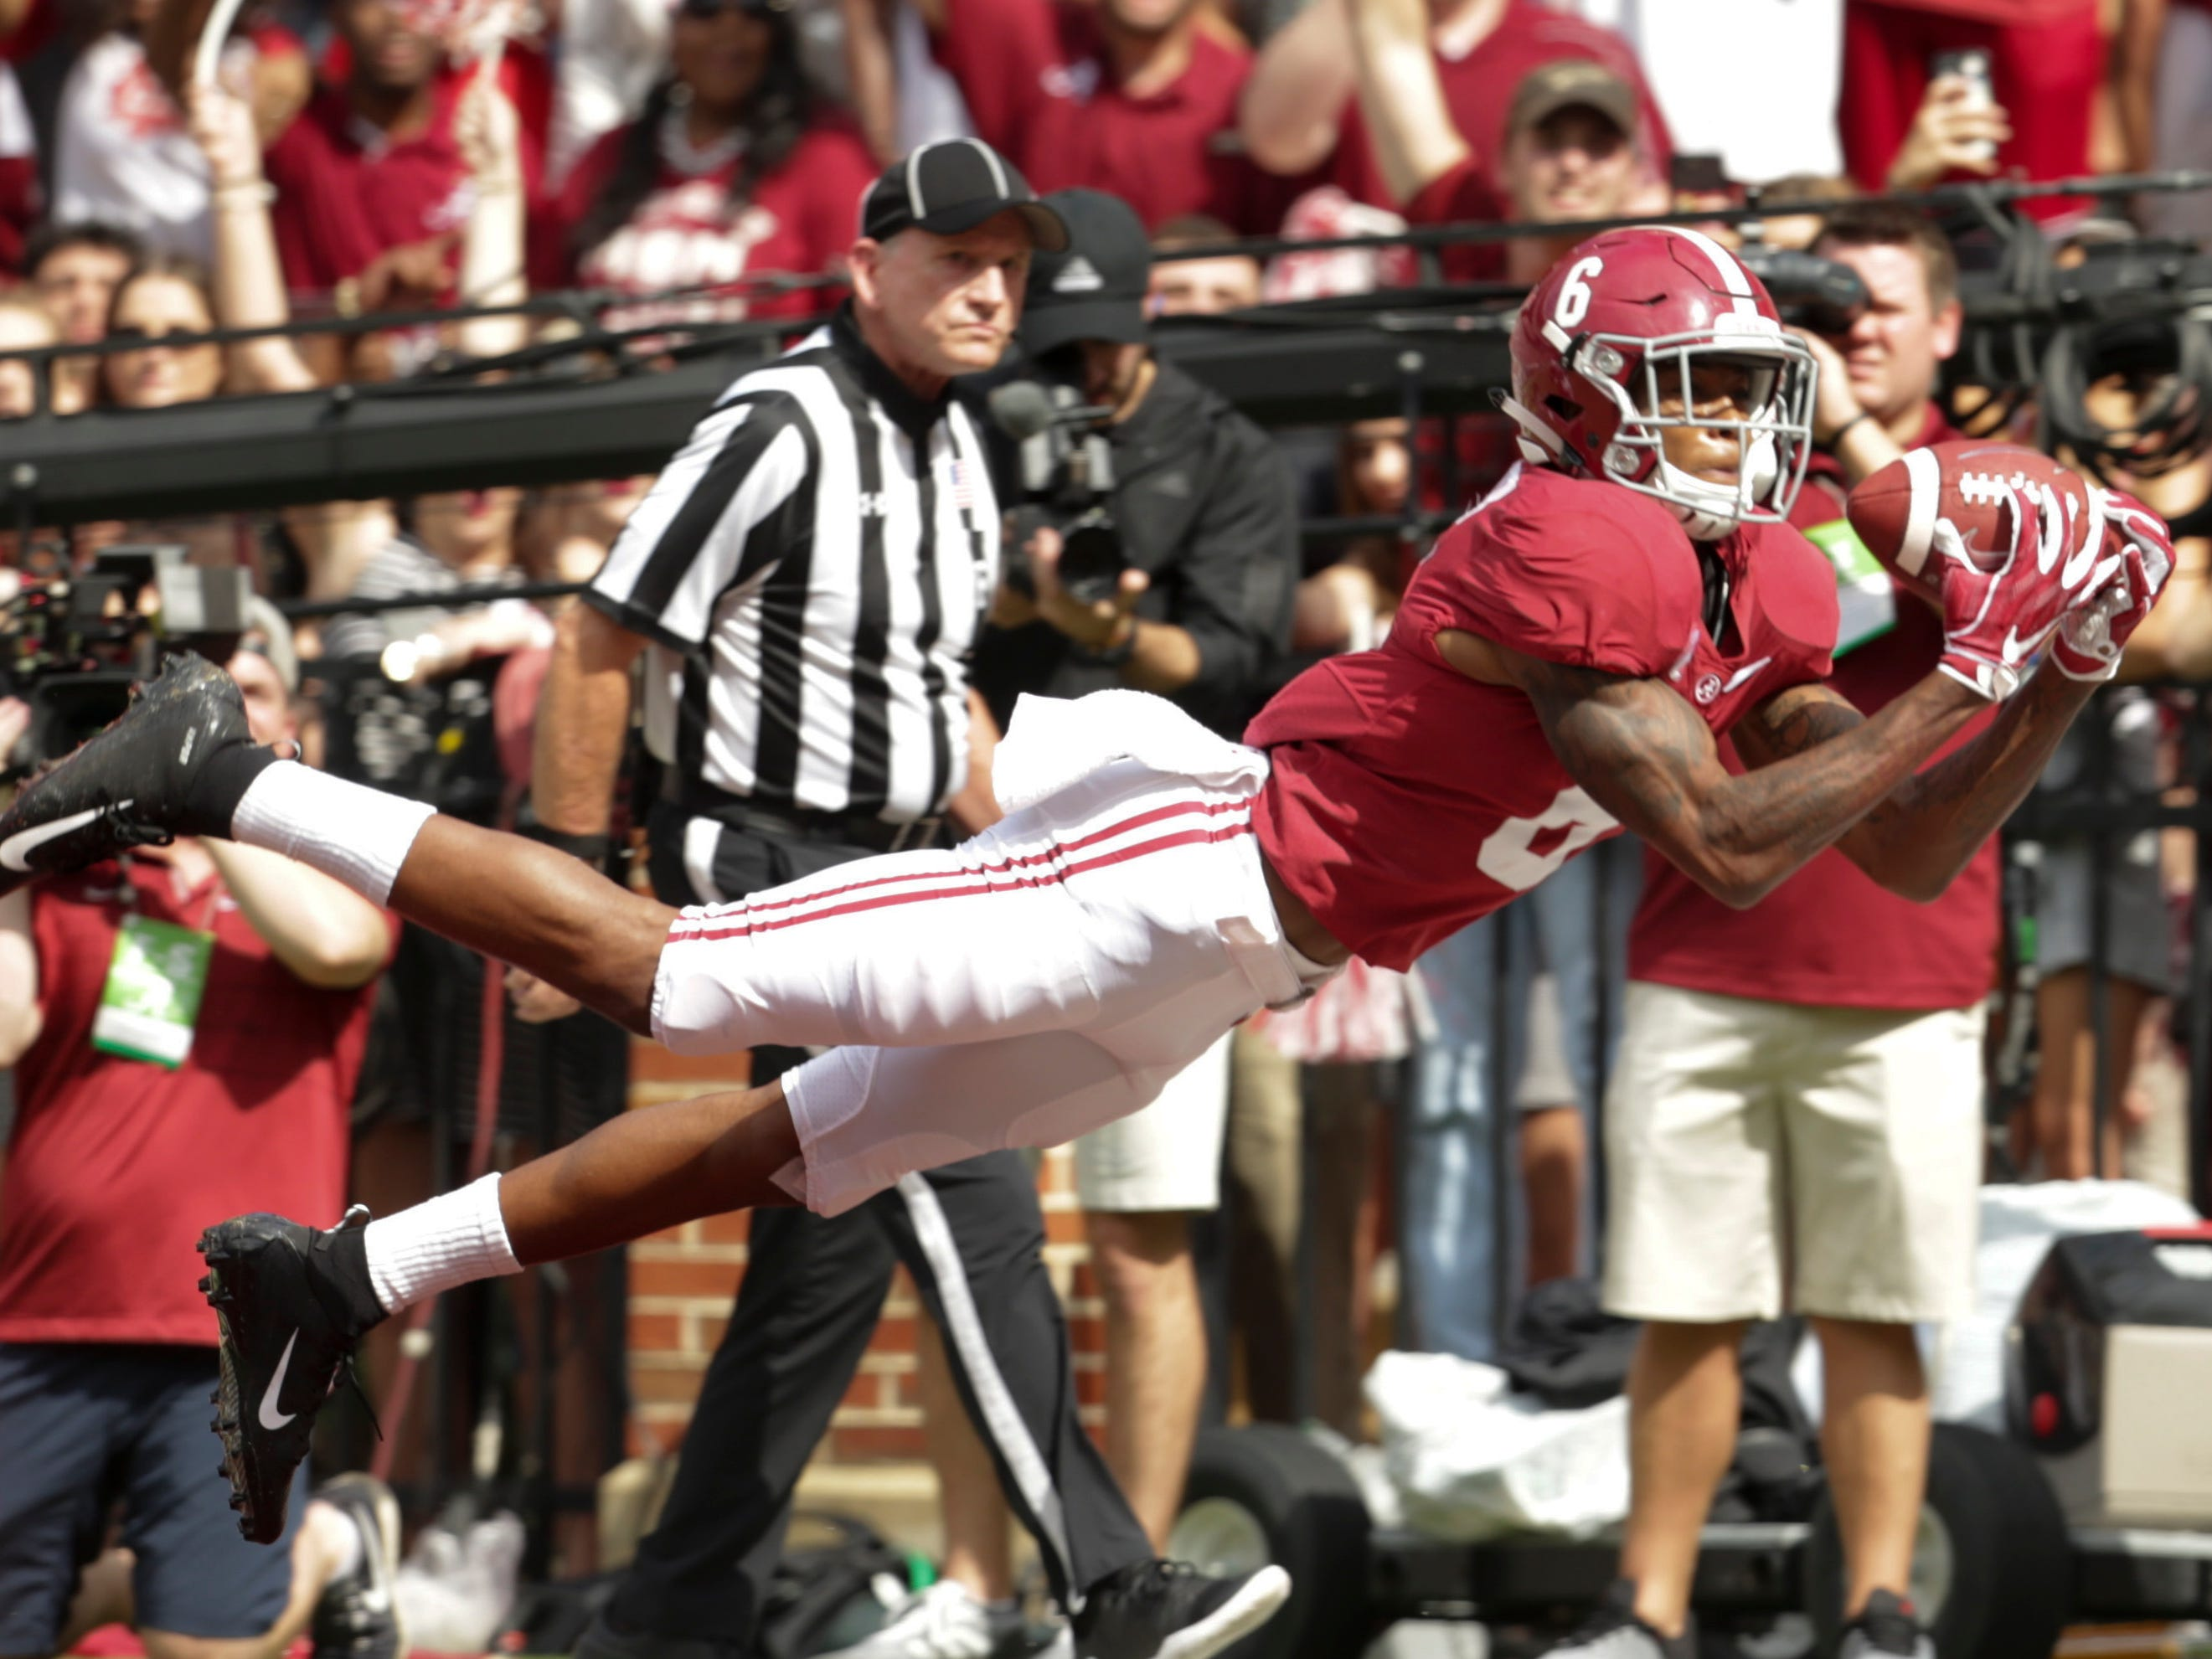 Alabama Crimson Tide wide receiver DeVonta Smith catches a pass for a touchdown against Texas A&M Aggies at Bryant-Denny Stadium.